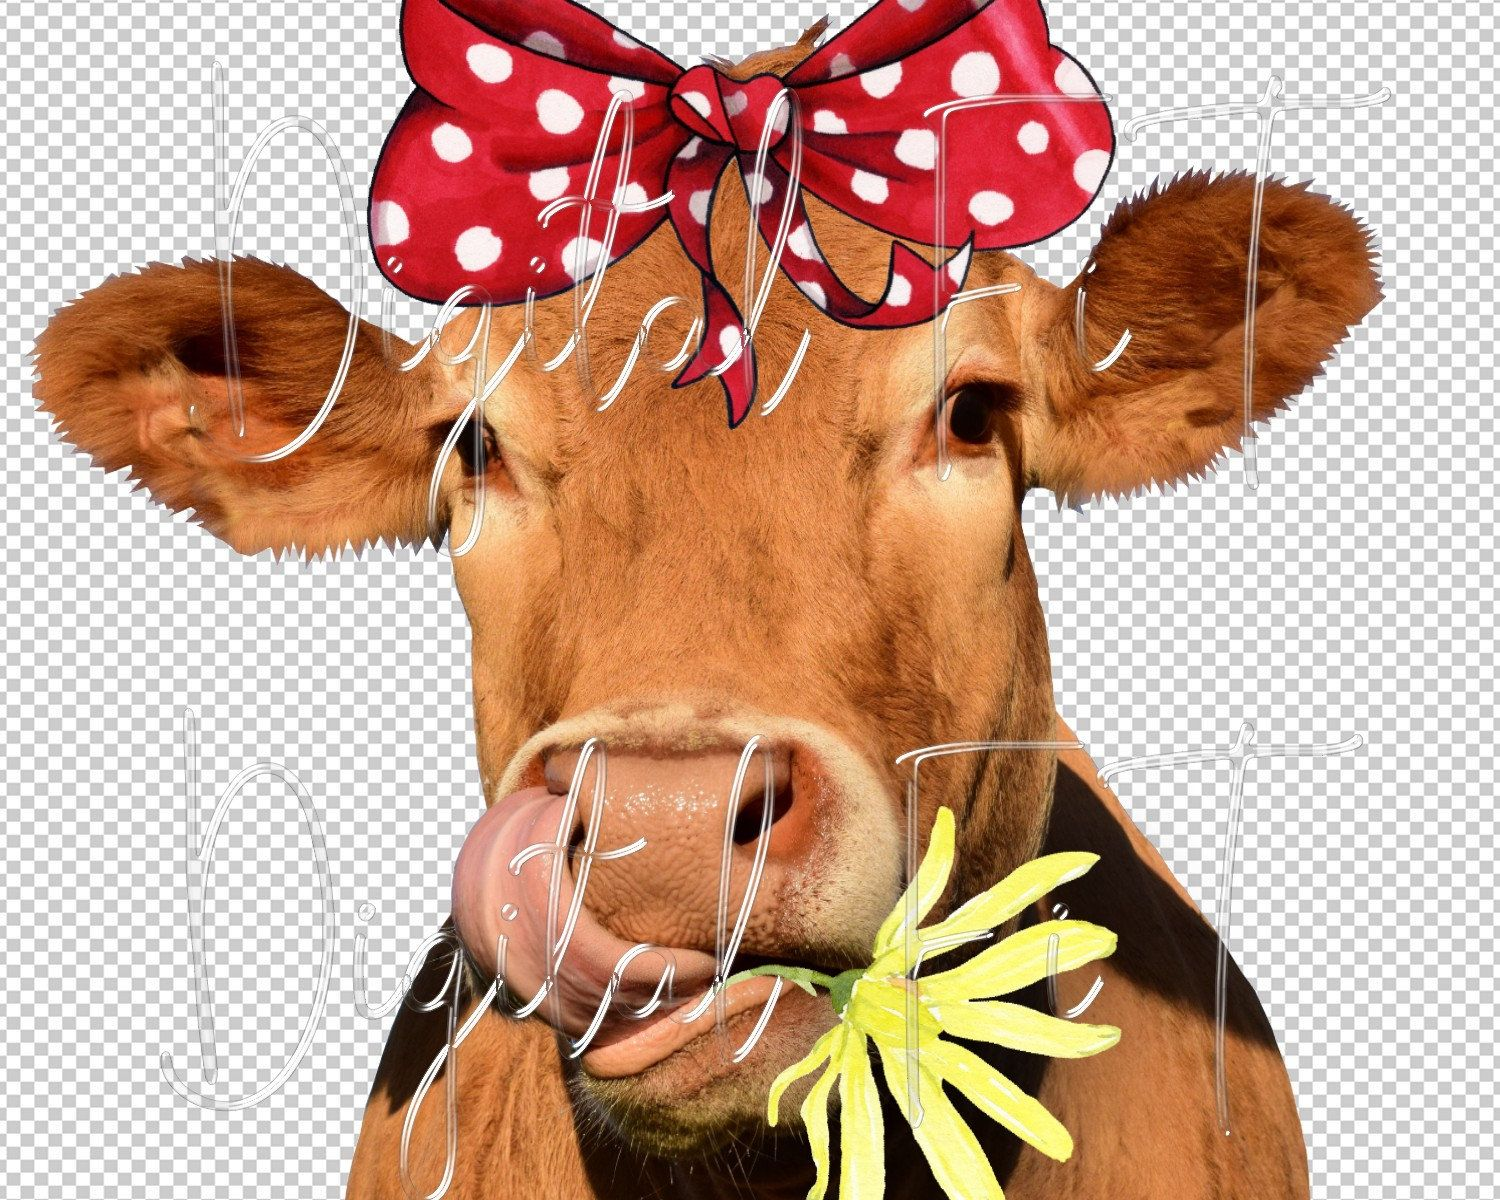 Funny Cow Face Png Digital File Commercial Use Instant Etsy In 2021 Cows Funny Cow Face Cow